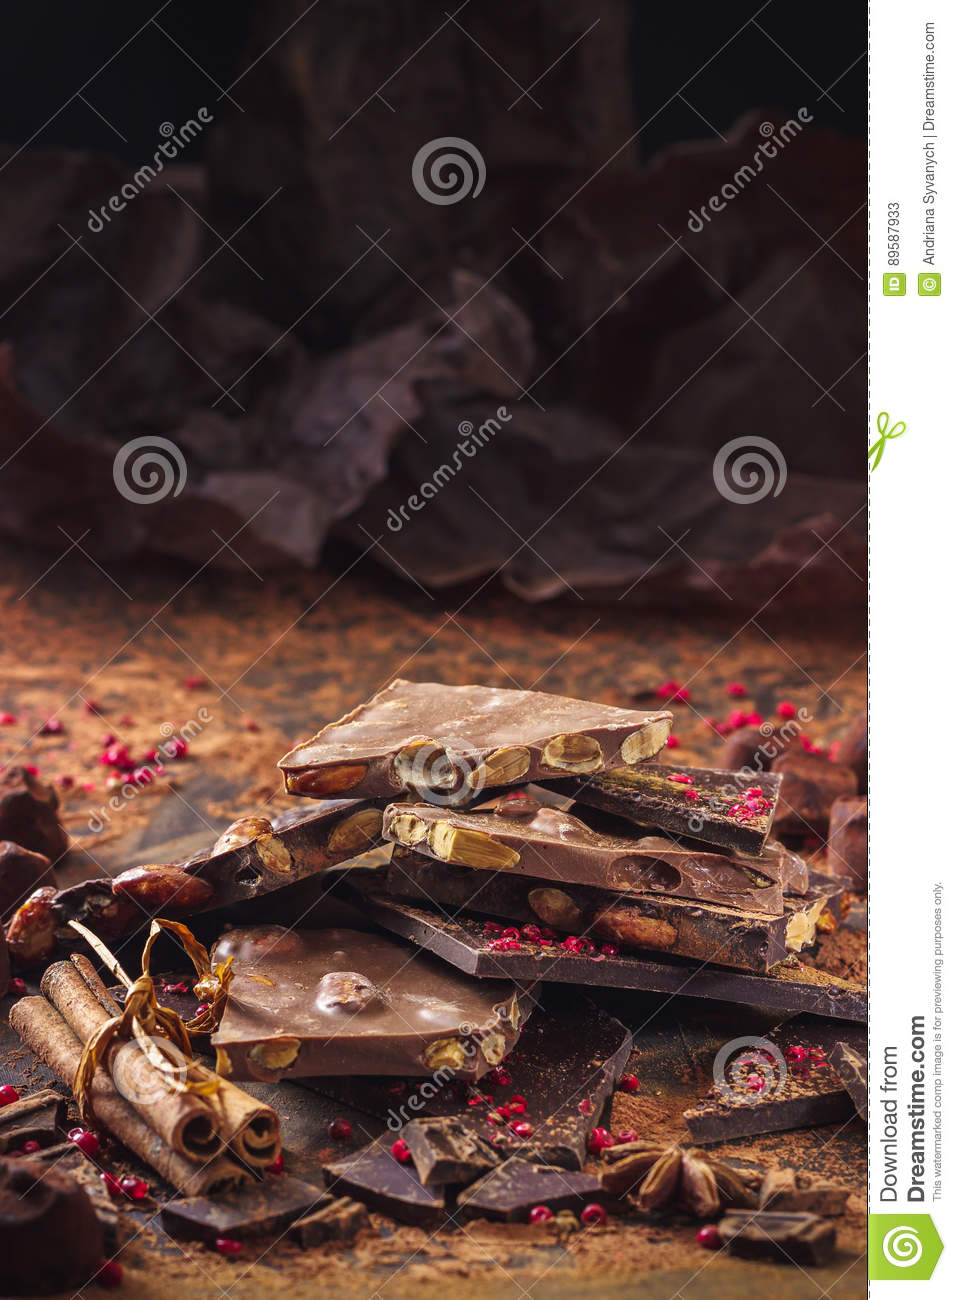 Assortment of chocolate bars, truffles, spices and cocoa powder